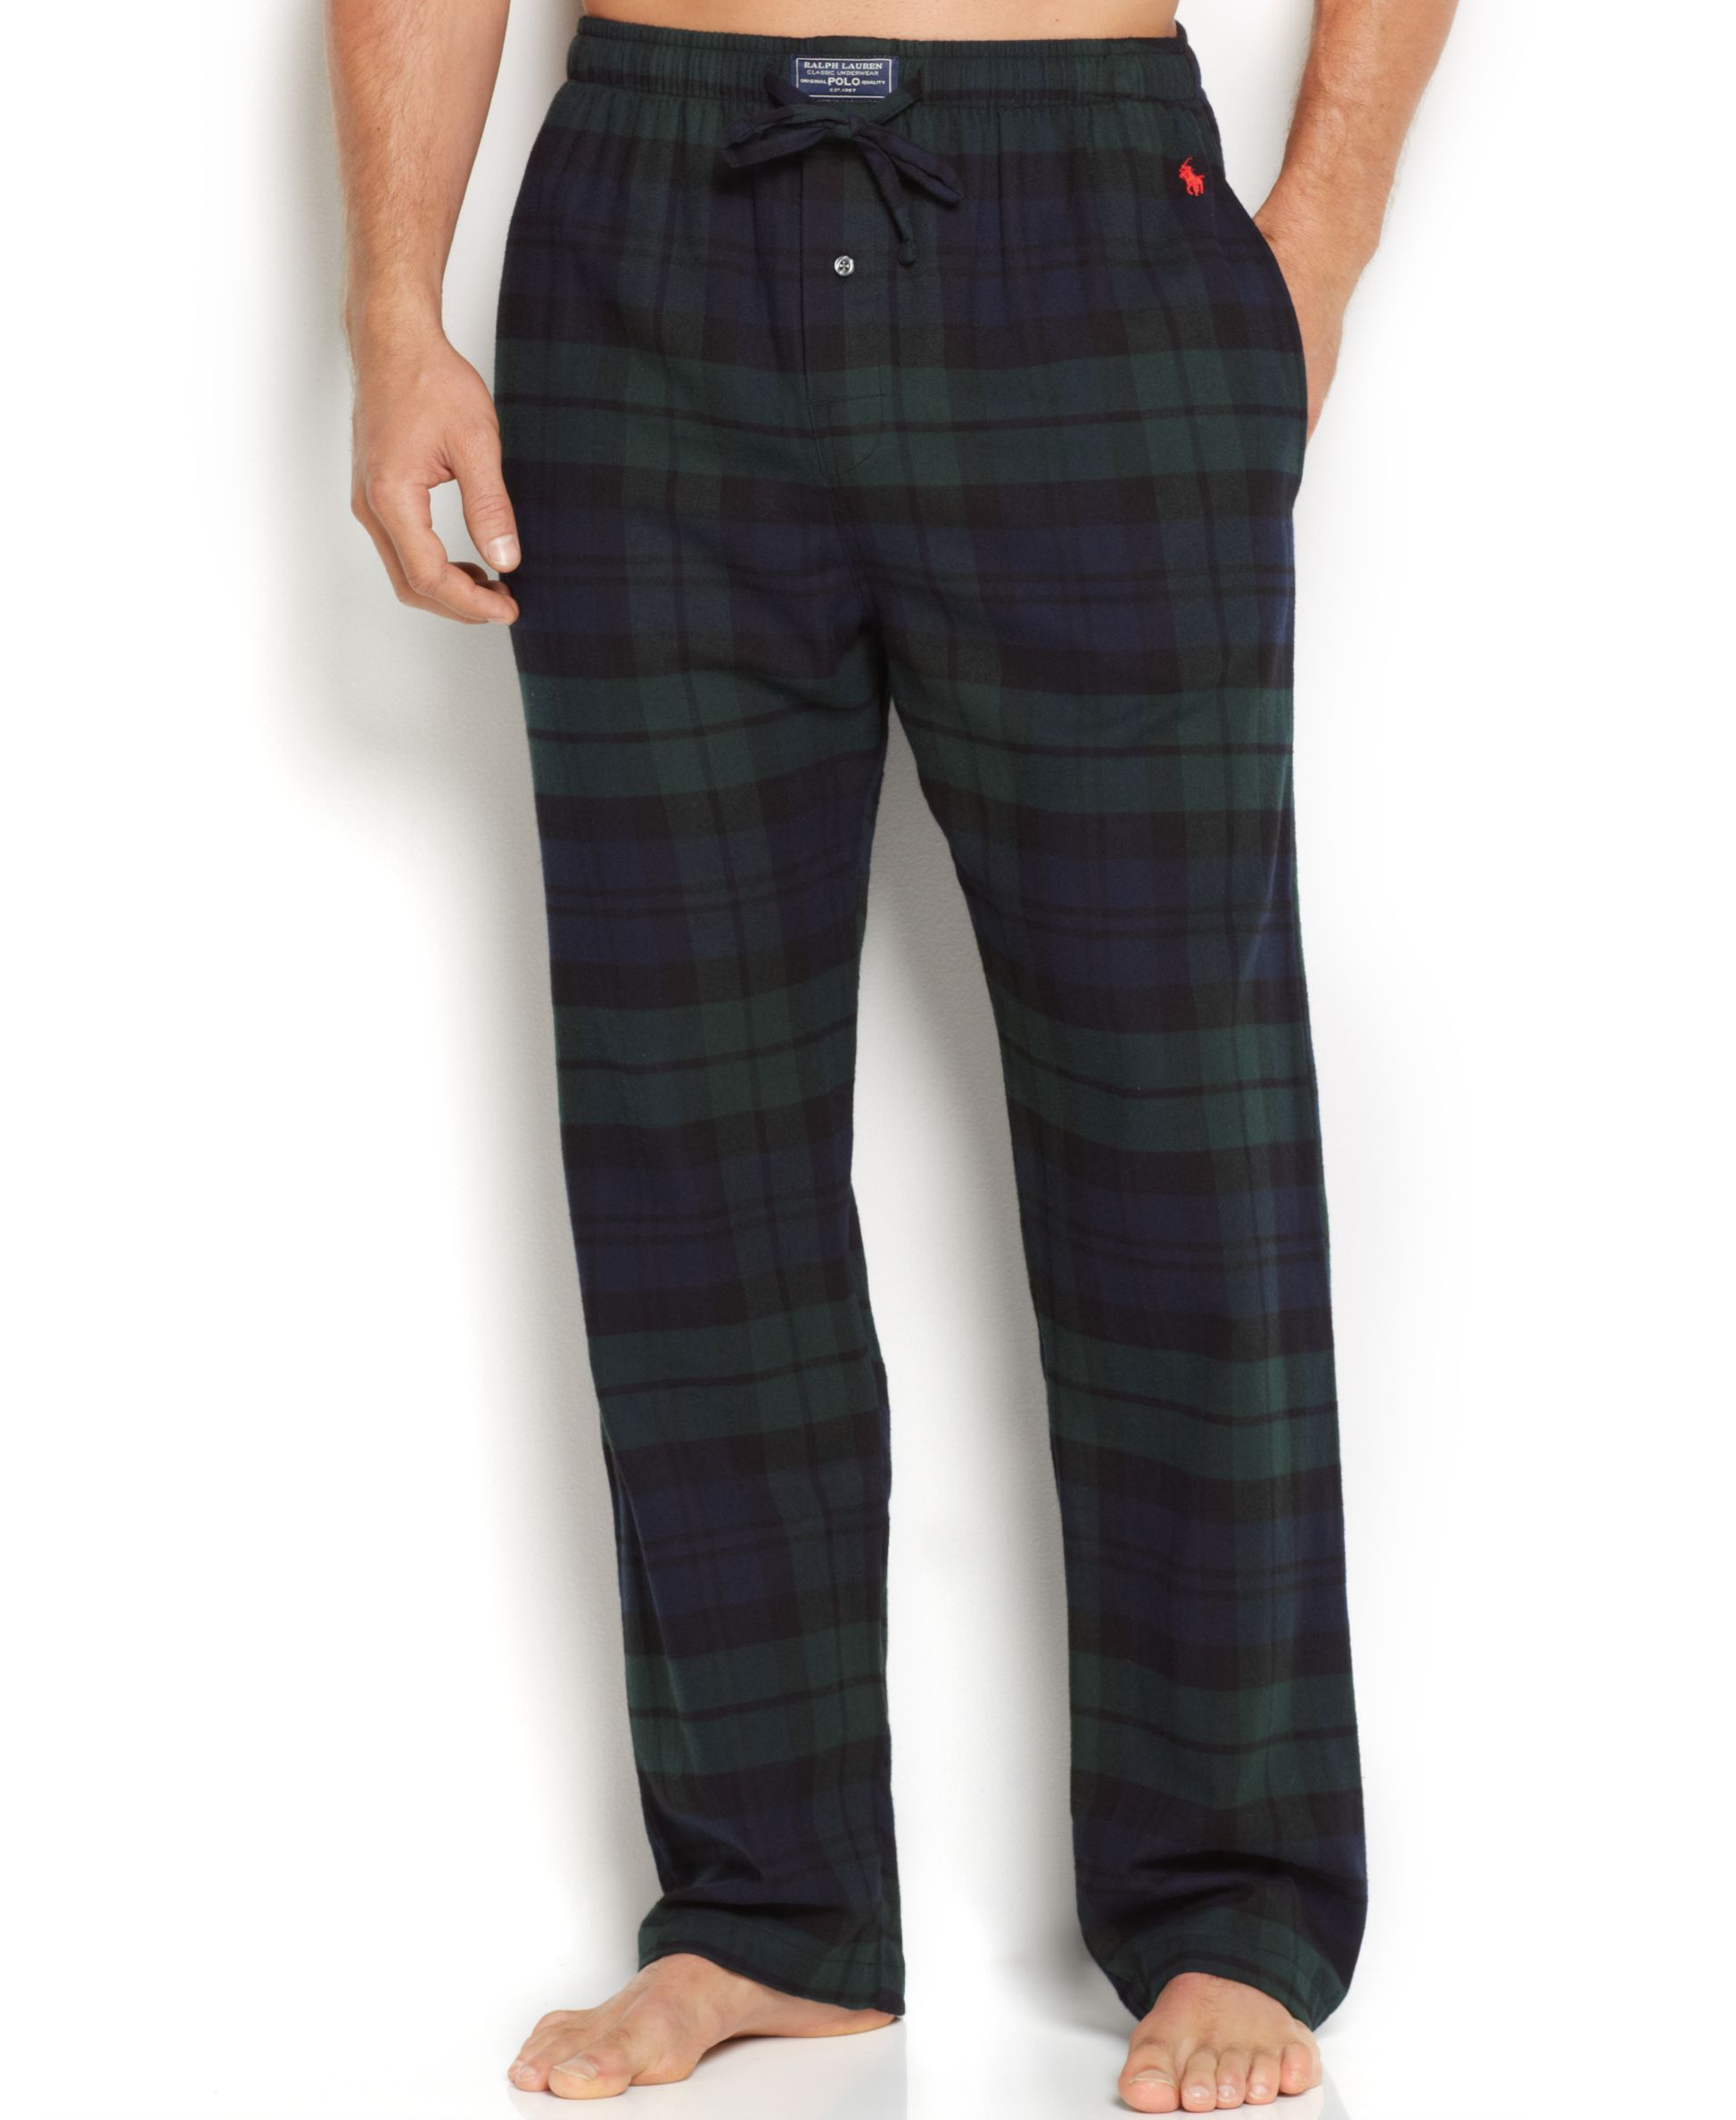 Polo Ralph Lauren Men's Plaid Flannel Pajama Pants - Pajamas, Lounge &  Sleepwear - Men - Macy's